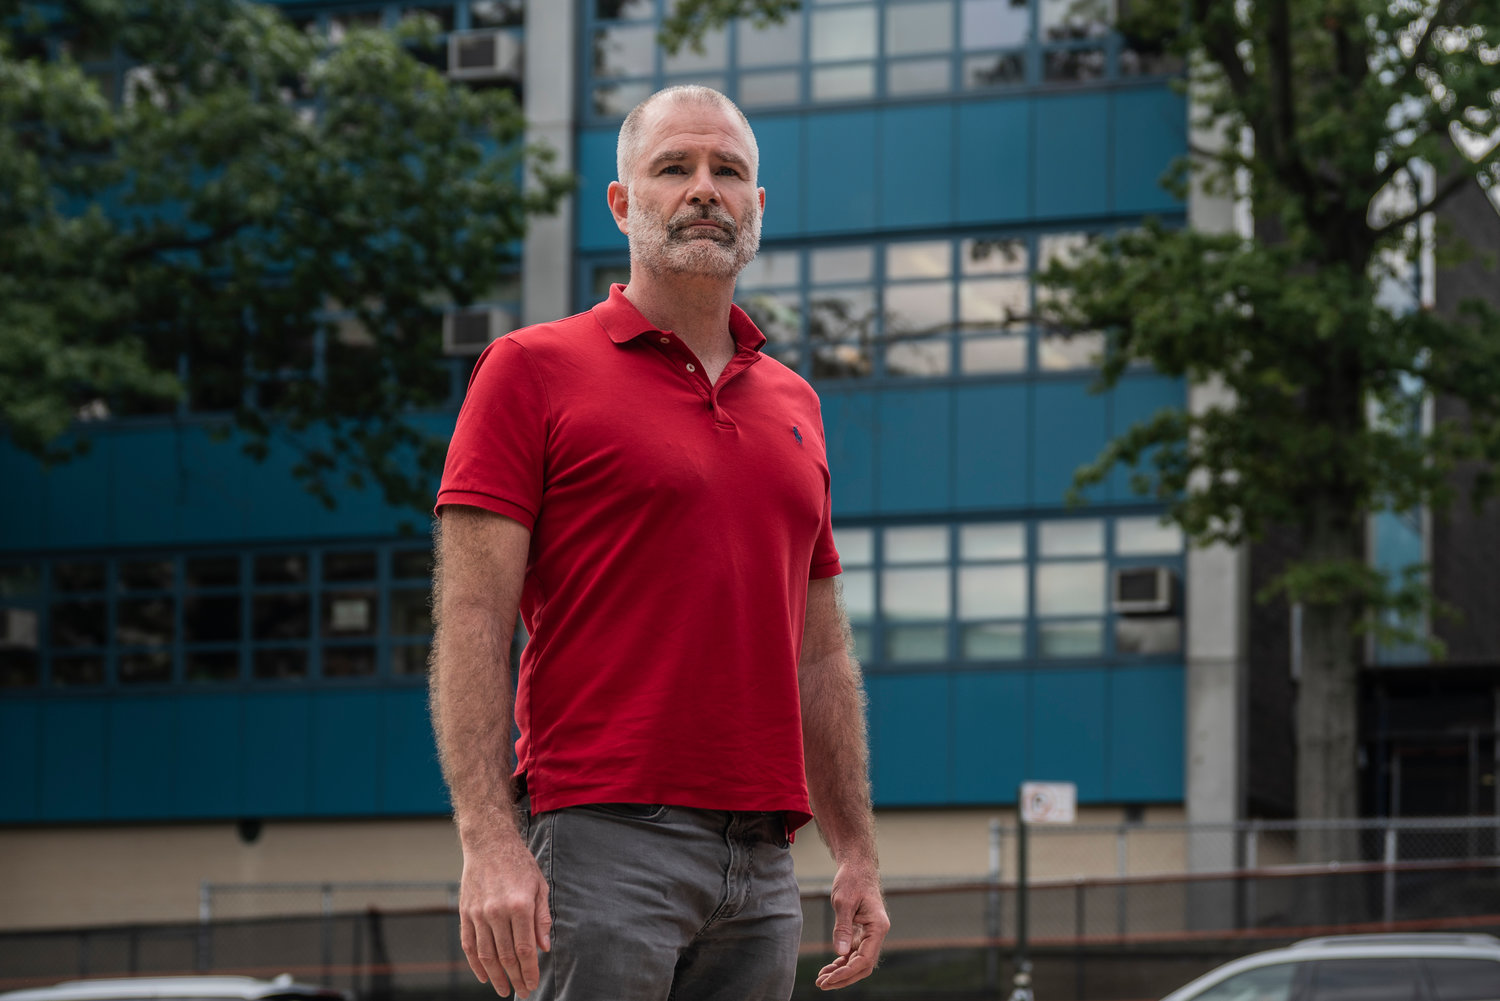 Michael Flanagan has taught social studies at Riverdale/Kingsbridge Academy for the past 14 years. But this academic year is sure to be unlike any other due to the coronavirus pandemic. And to him, it might not be safe for students to return to school just yet.